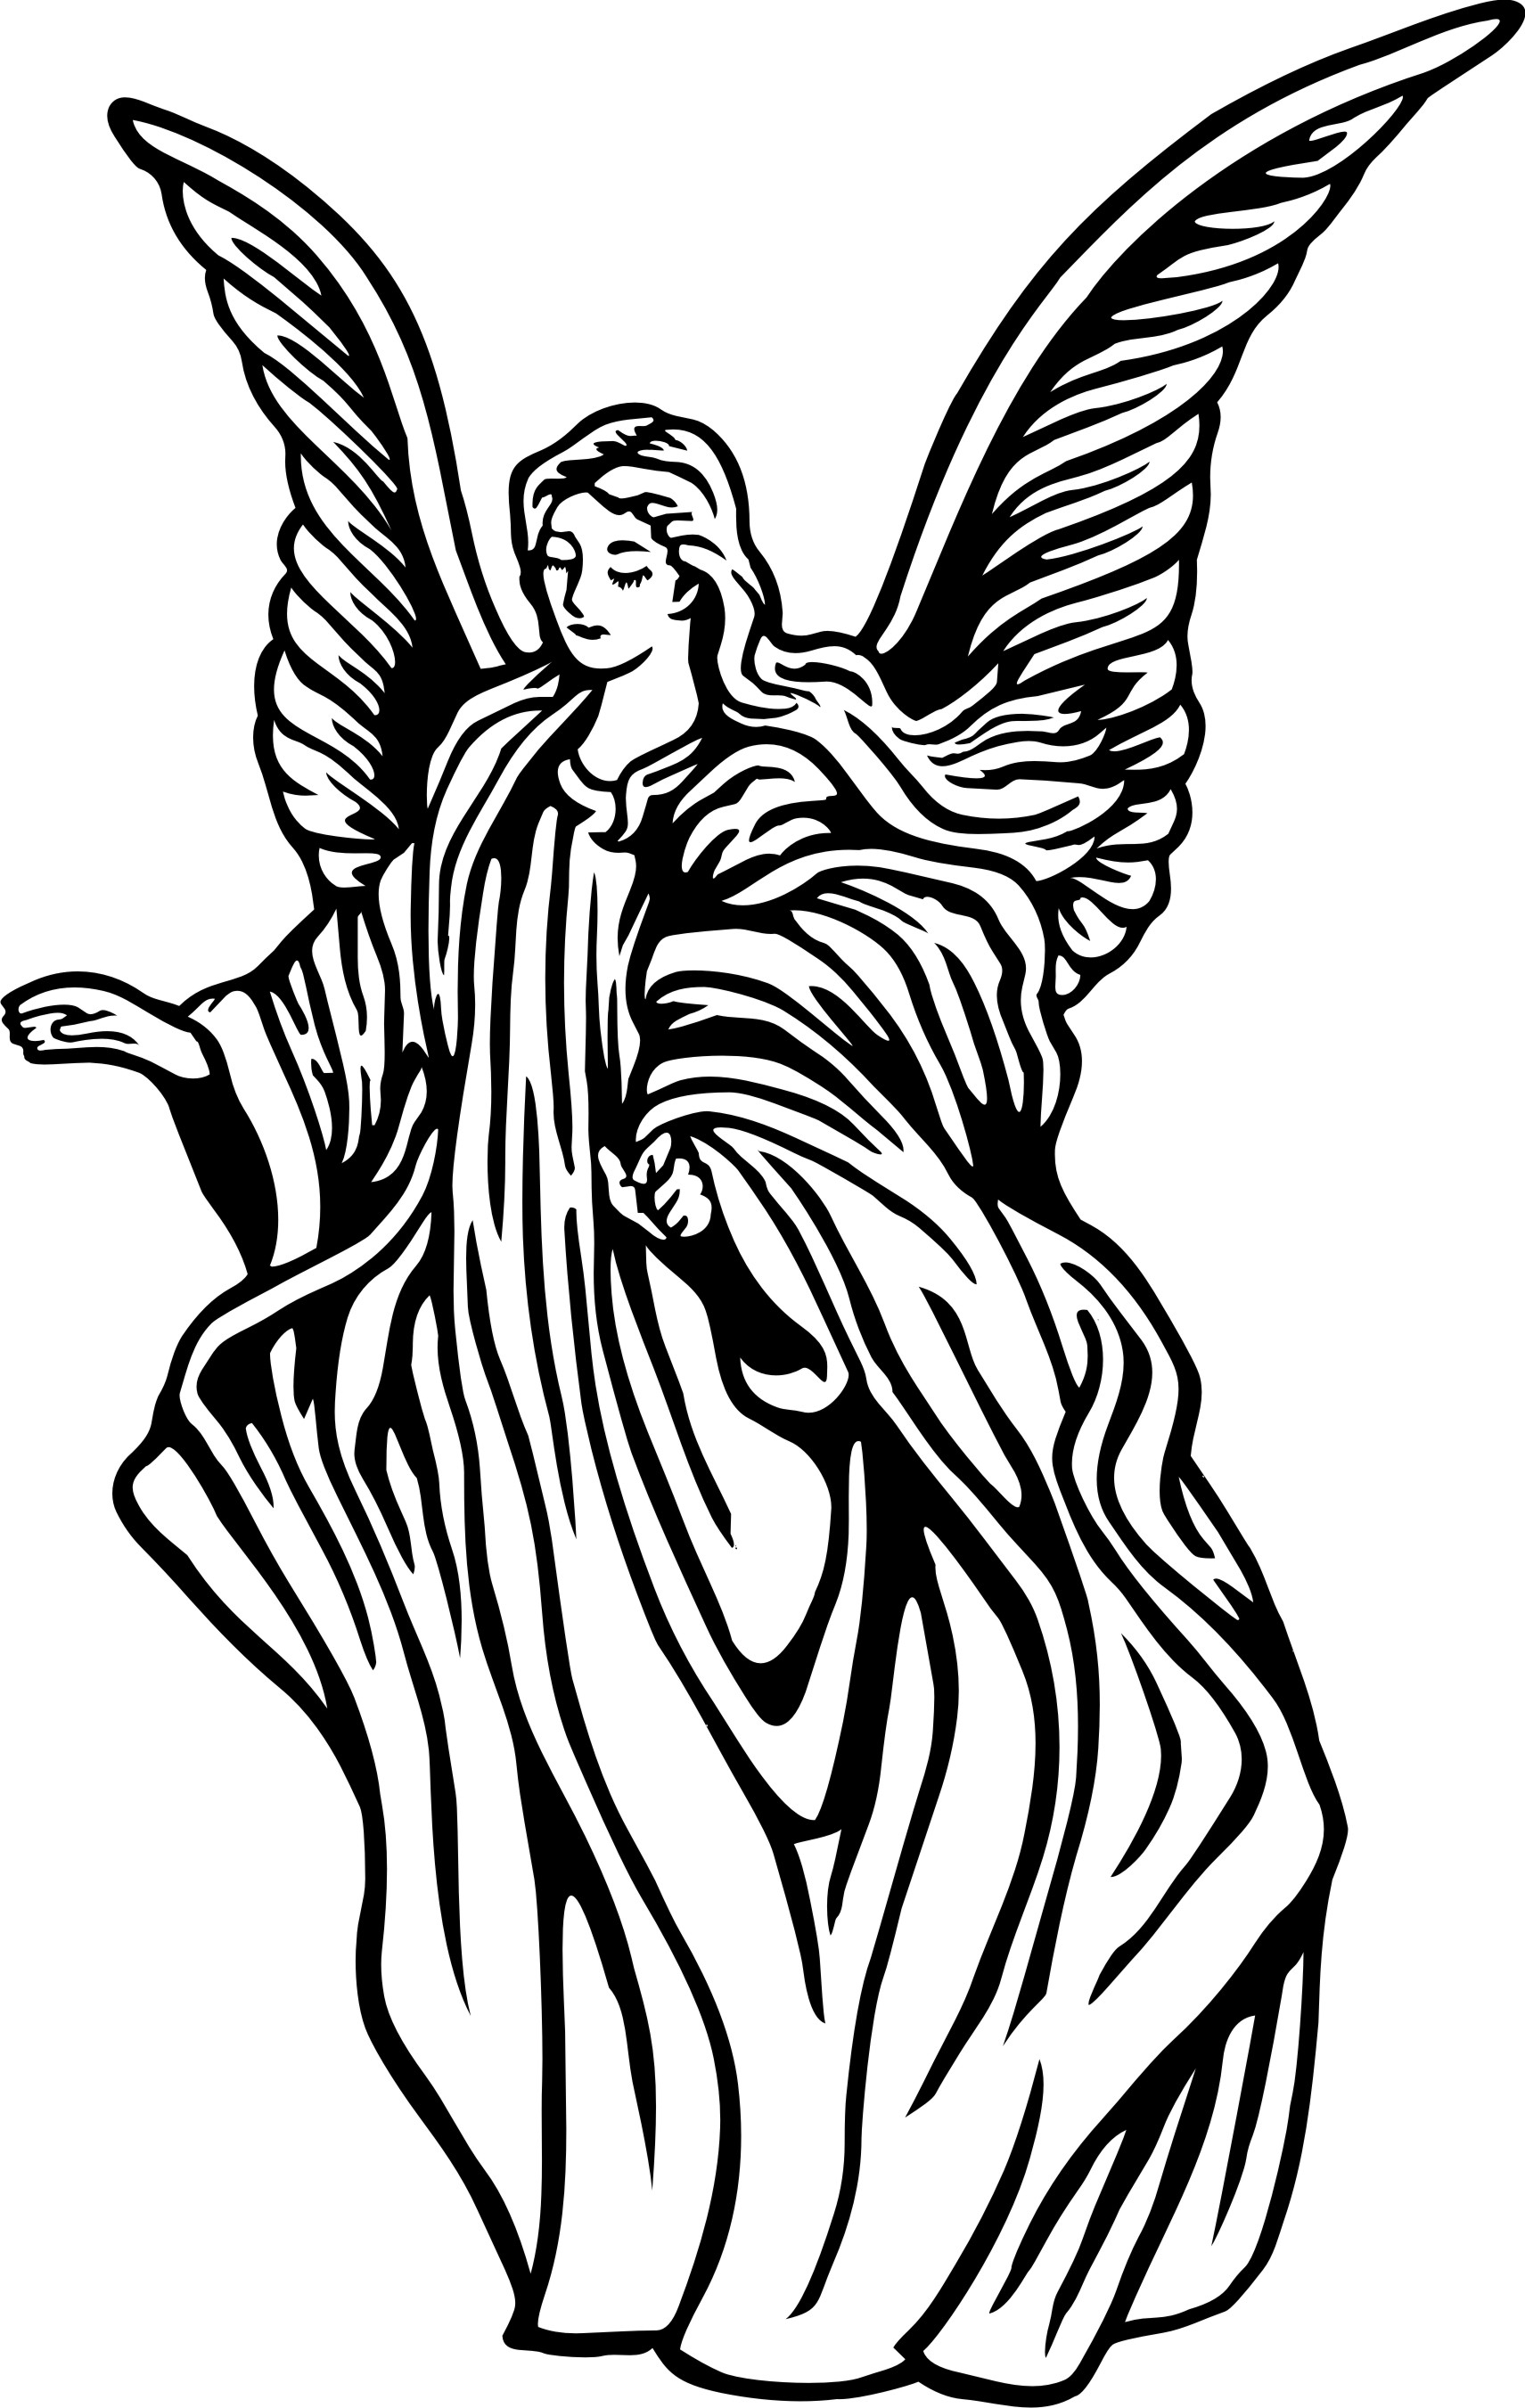 Drawings . Angels clipart guardian angel